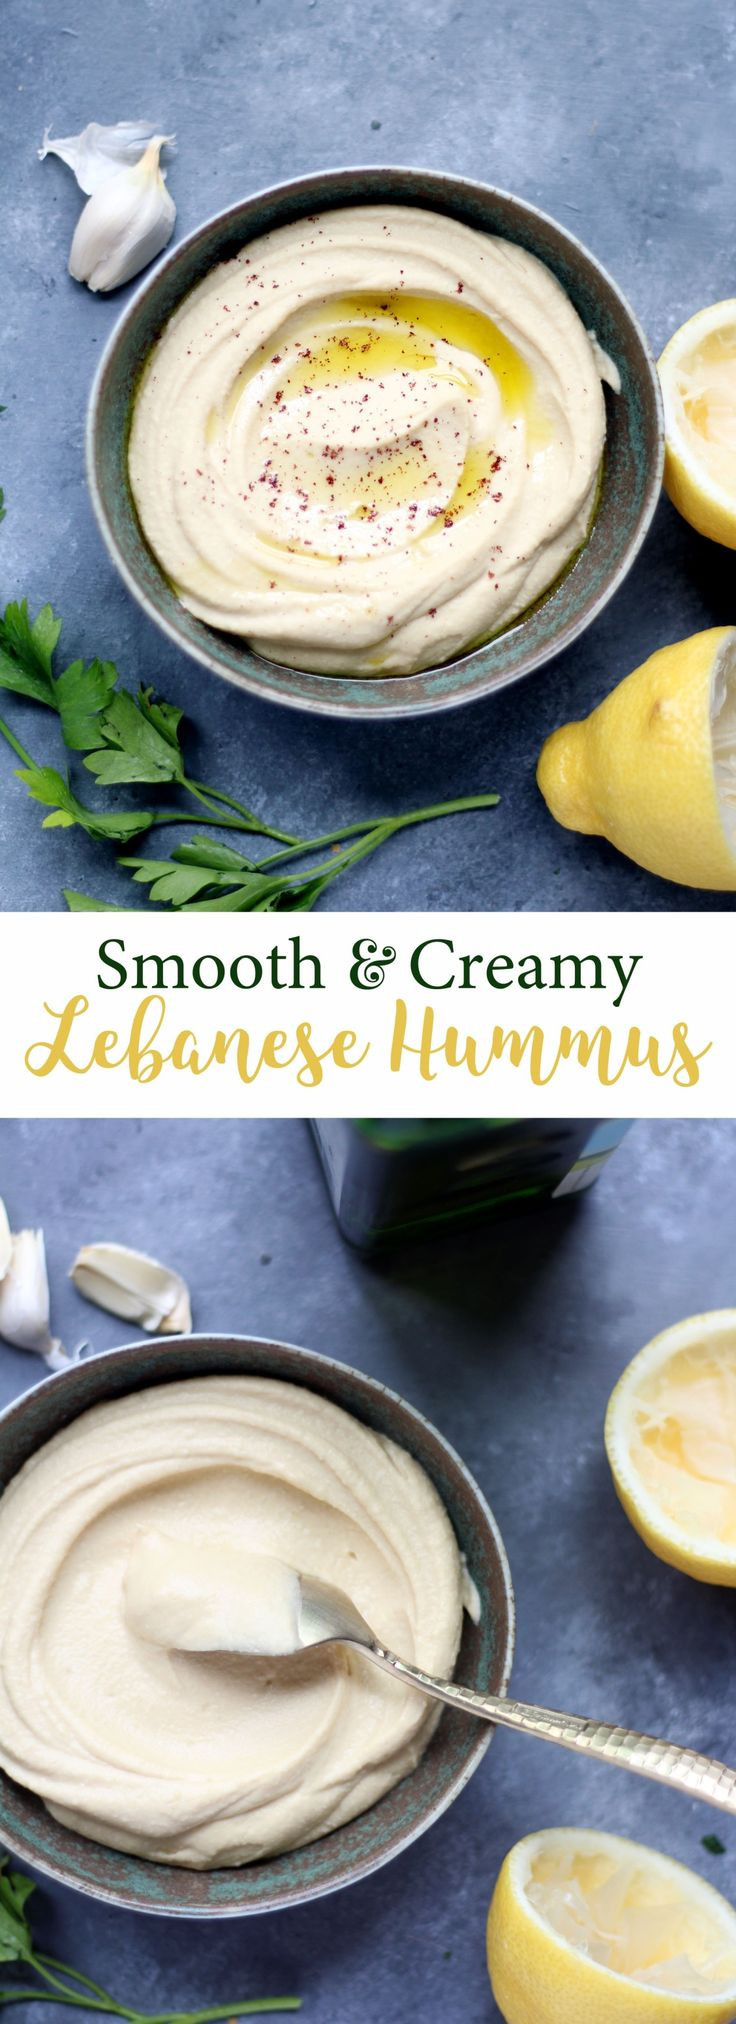 Delicious + Traditional Hummus made in the Vitamix blender